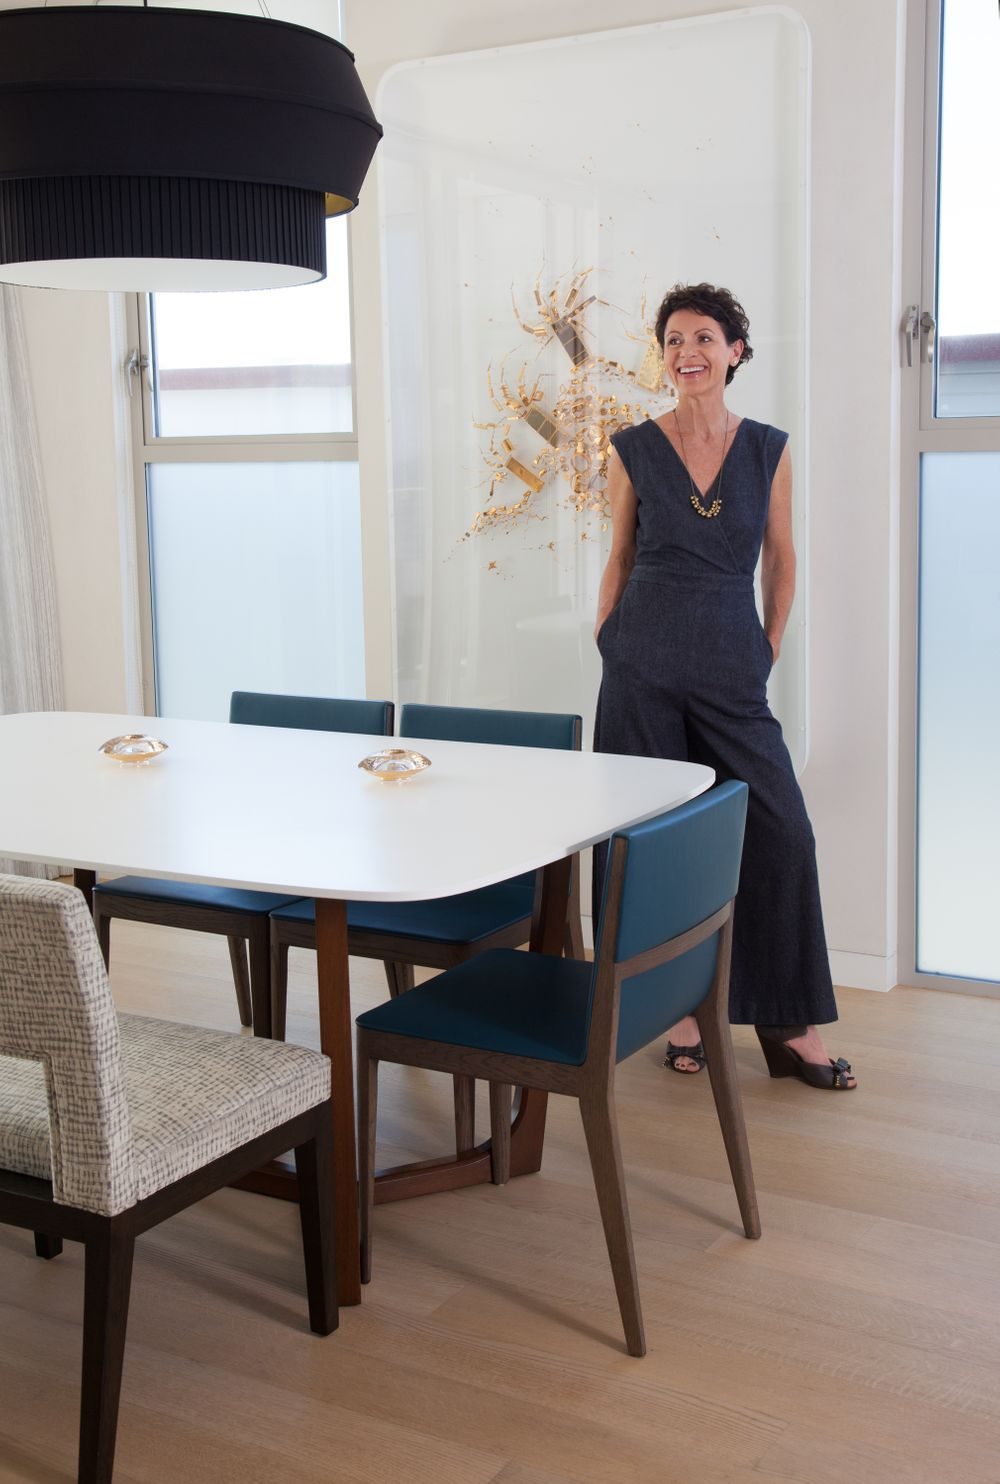 Woman Interior Designer smiling in designer dining room